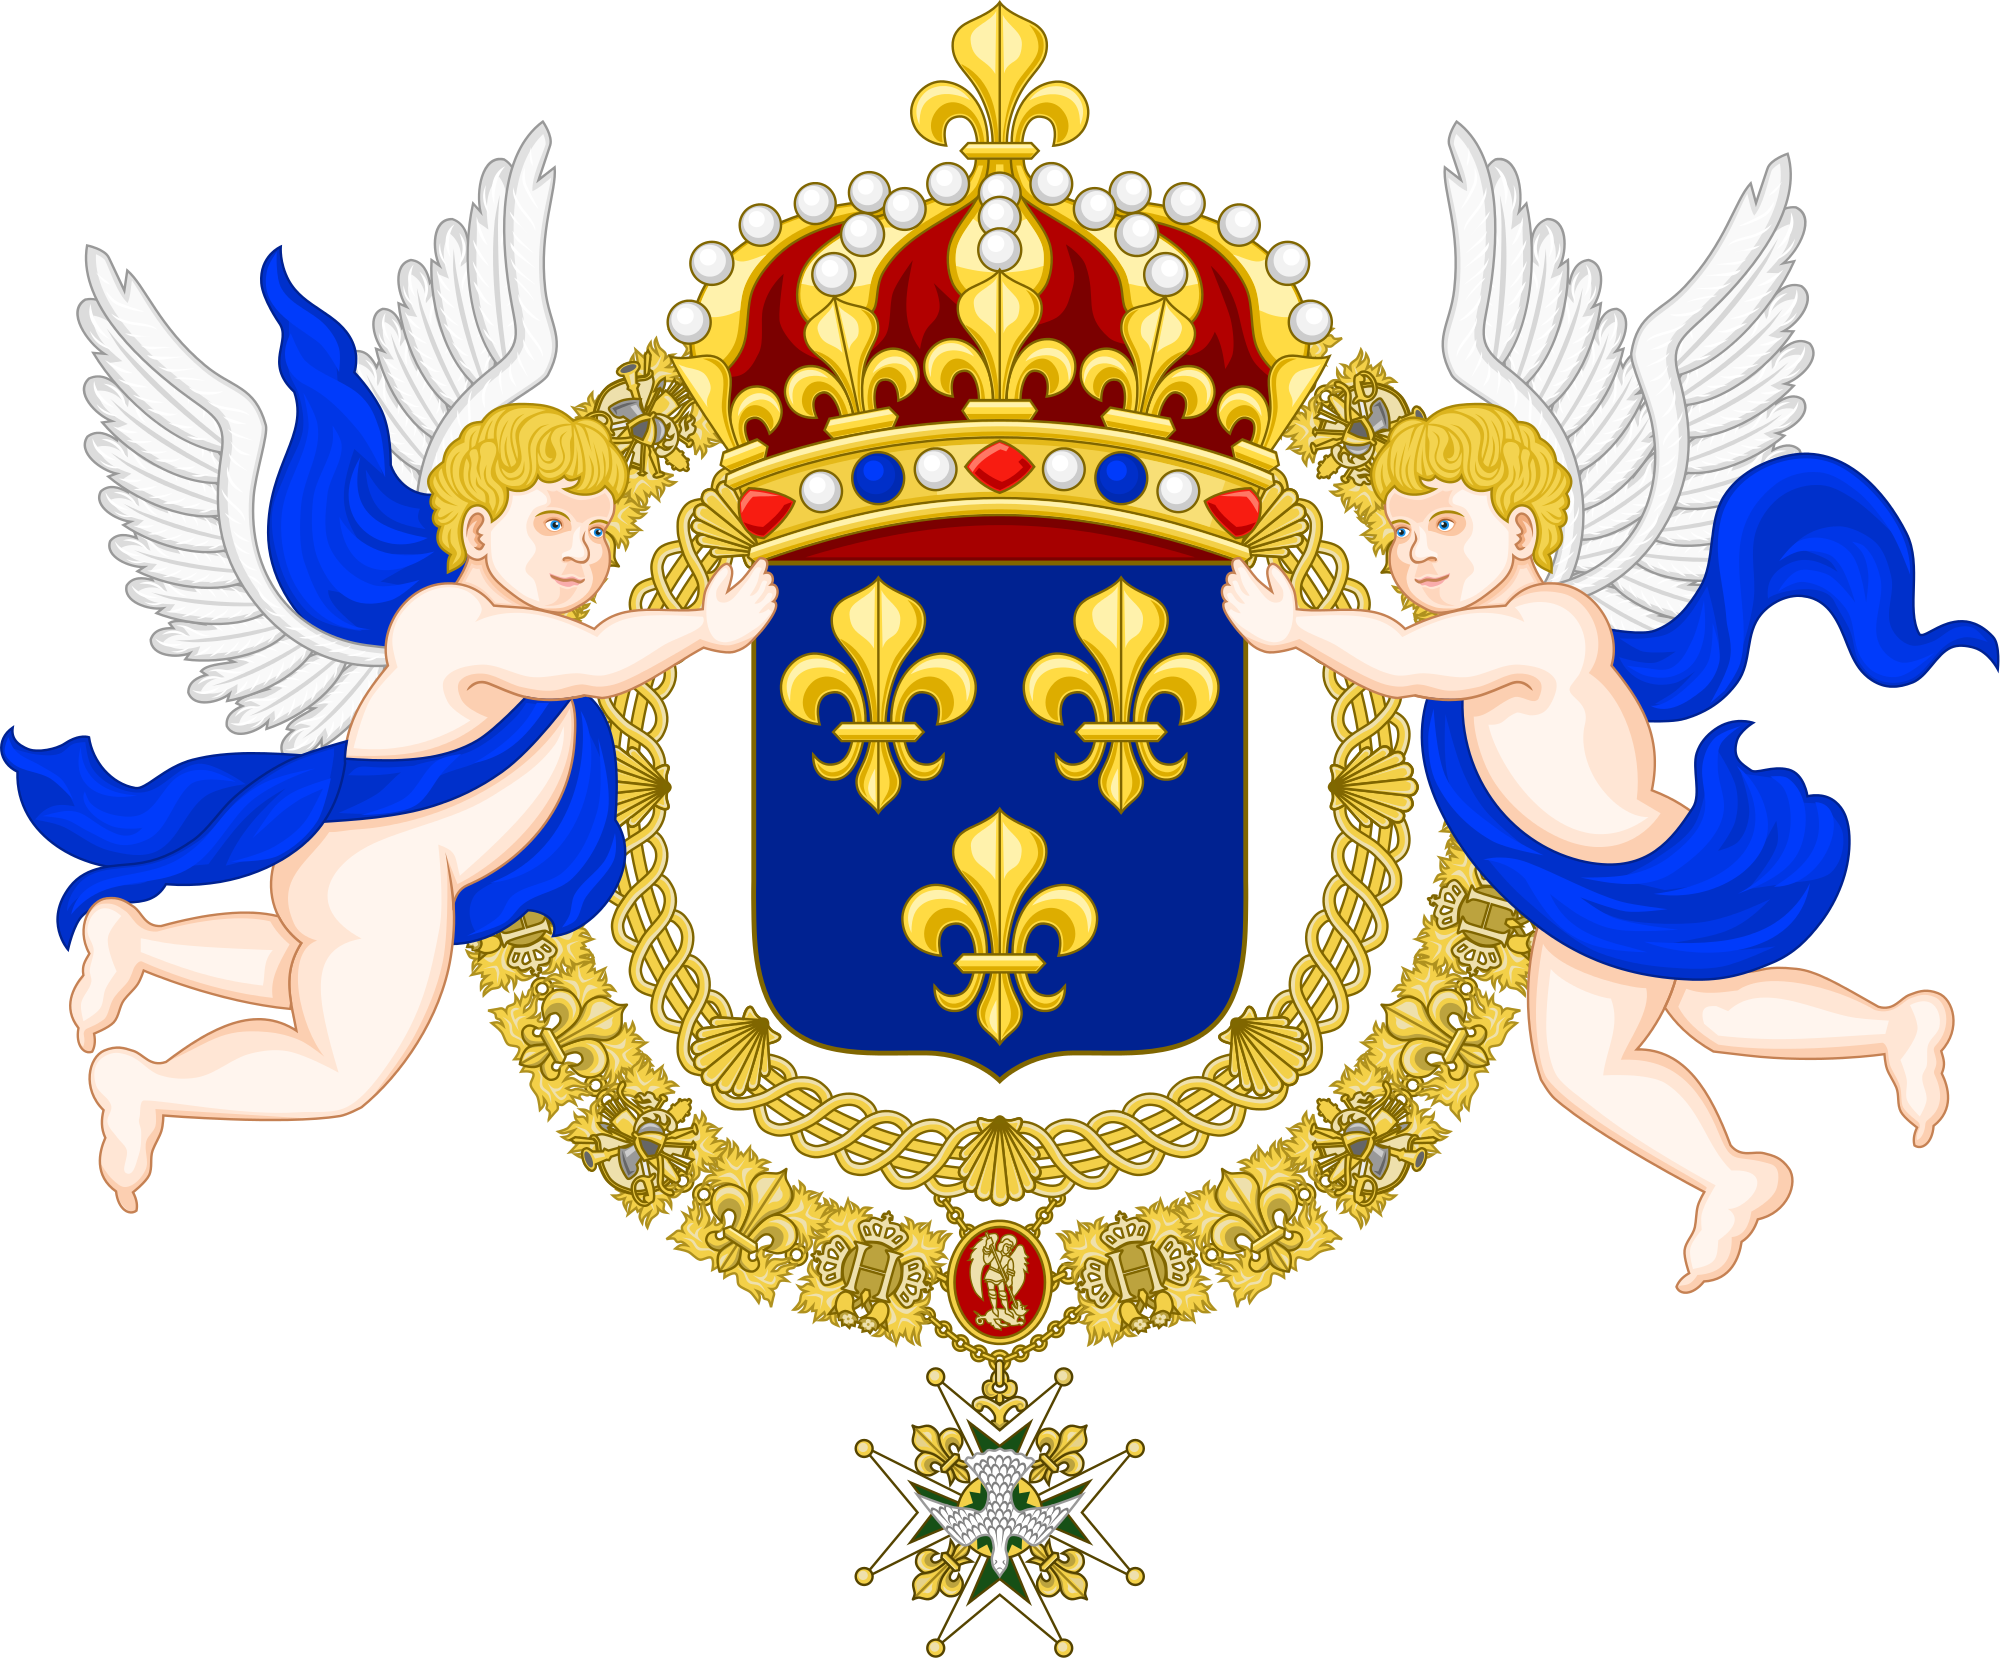 Kingdom of coat arms. France clipart bakery french